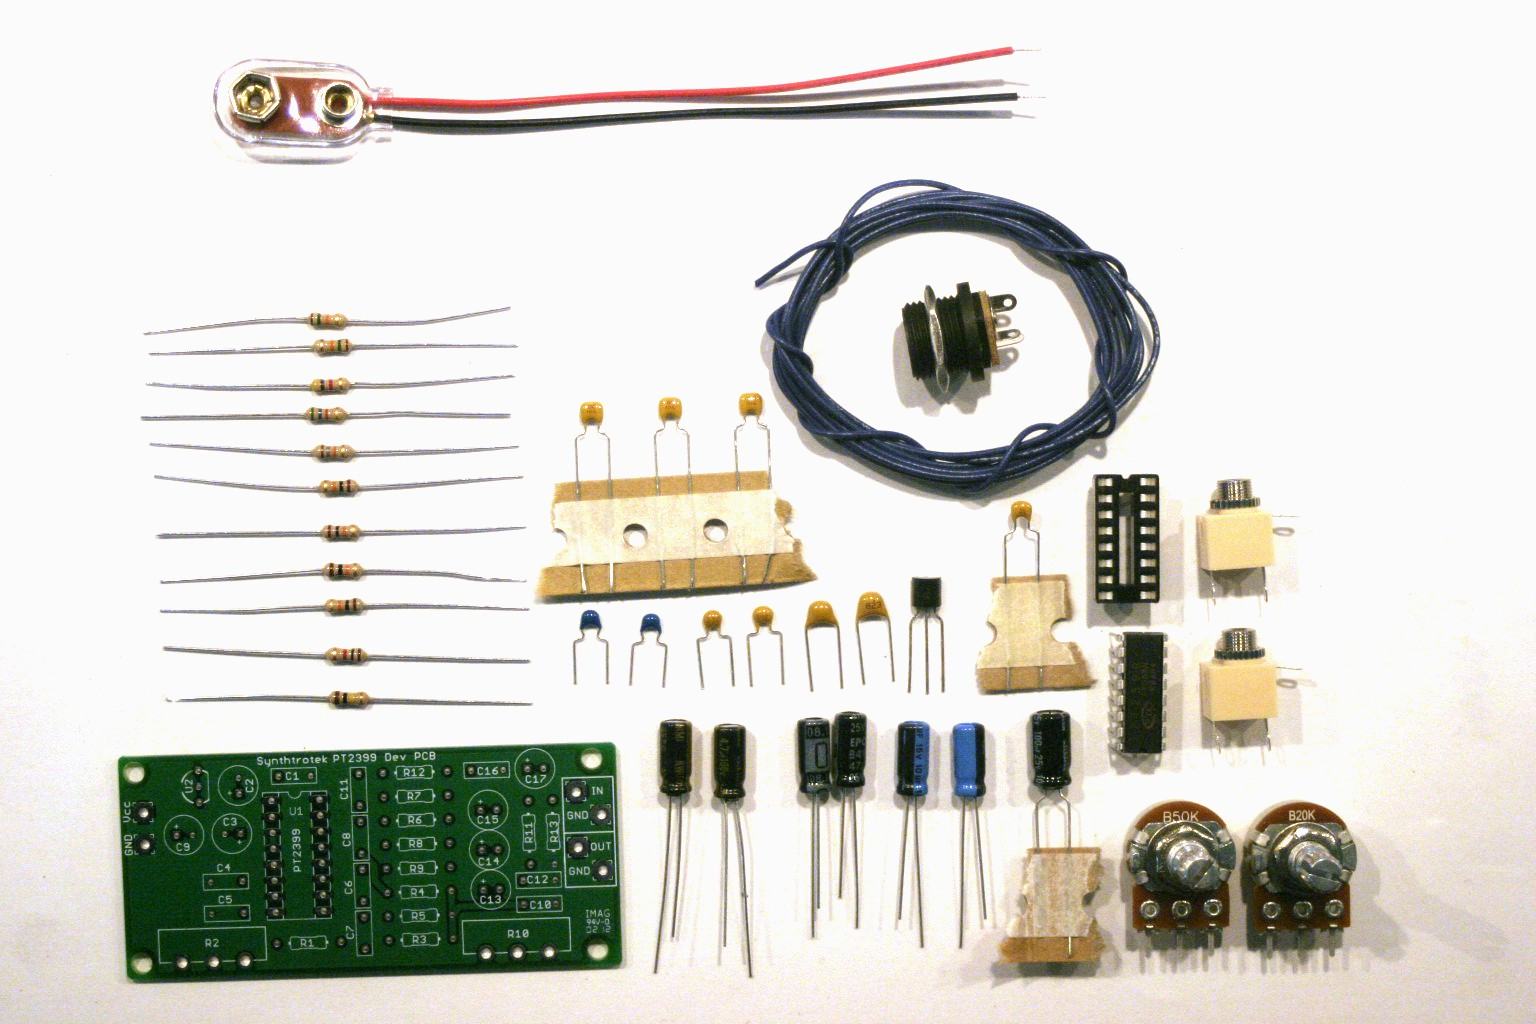 Pt2399 Dev Delay Assembly Instructions Synthrotek Electronic Wiring Board Diy Circuits